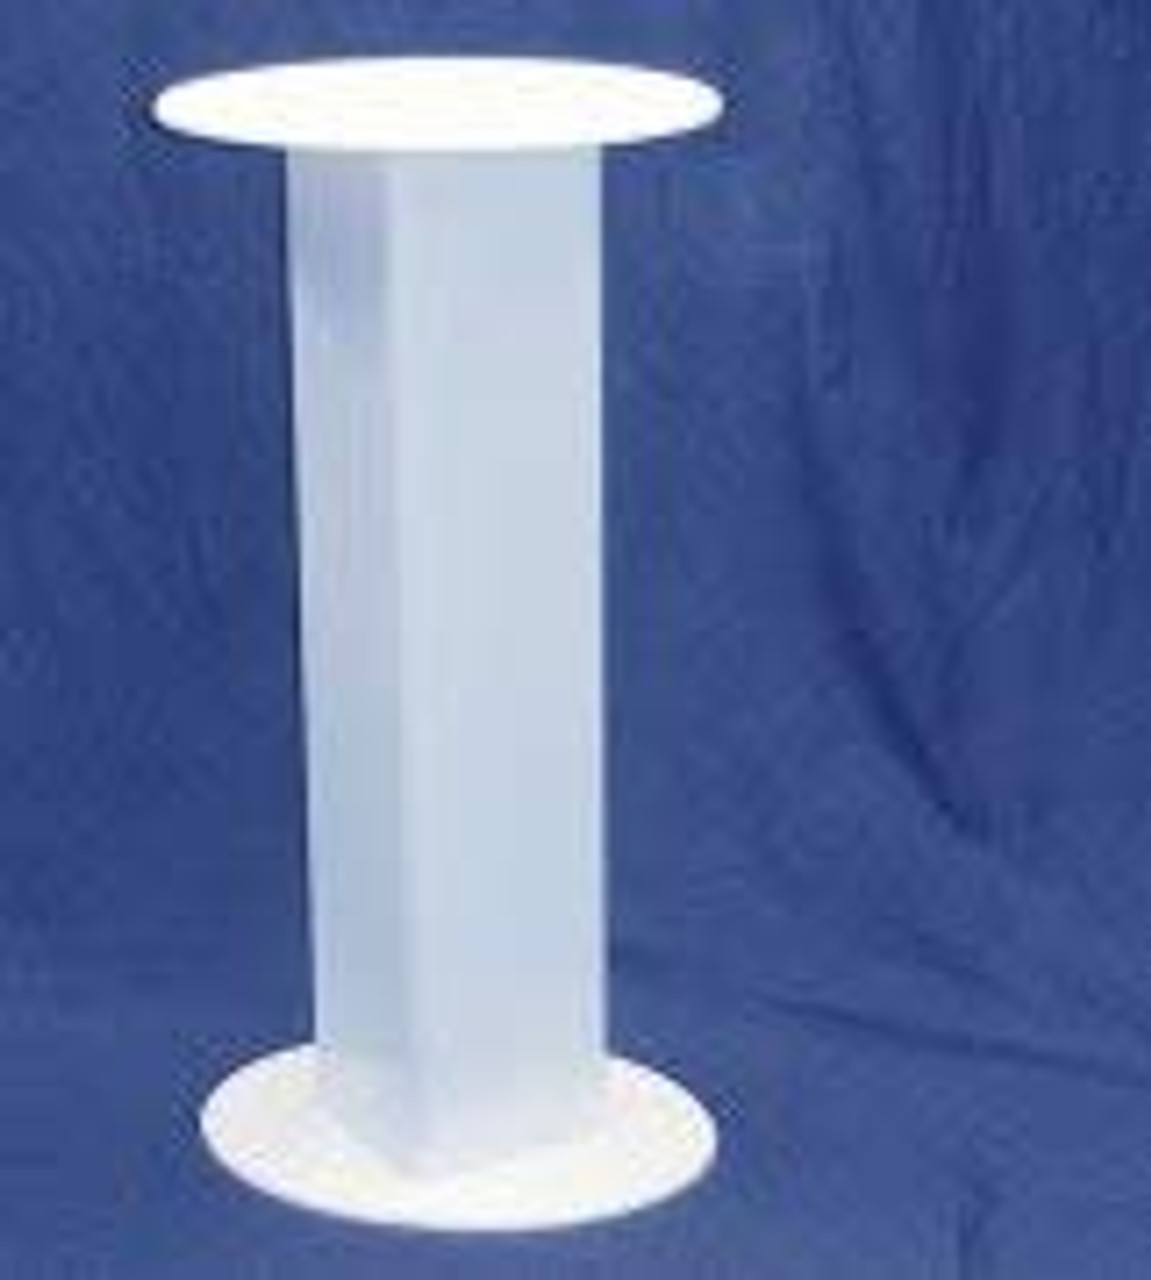 Clear Stands Oval Acrylic Pedestal, 36 Inch, White